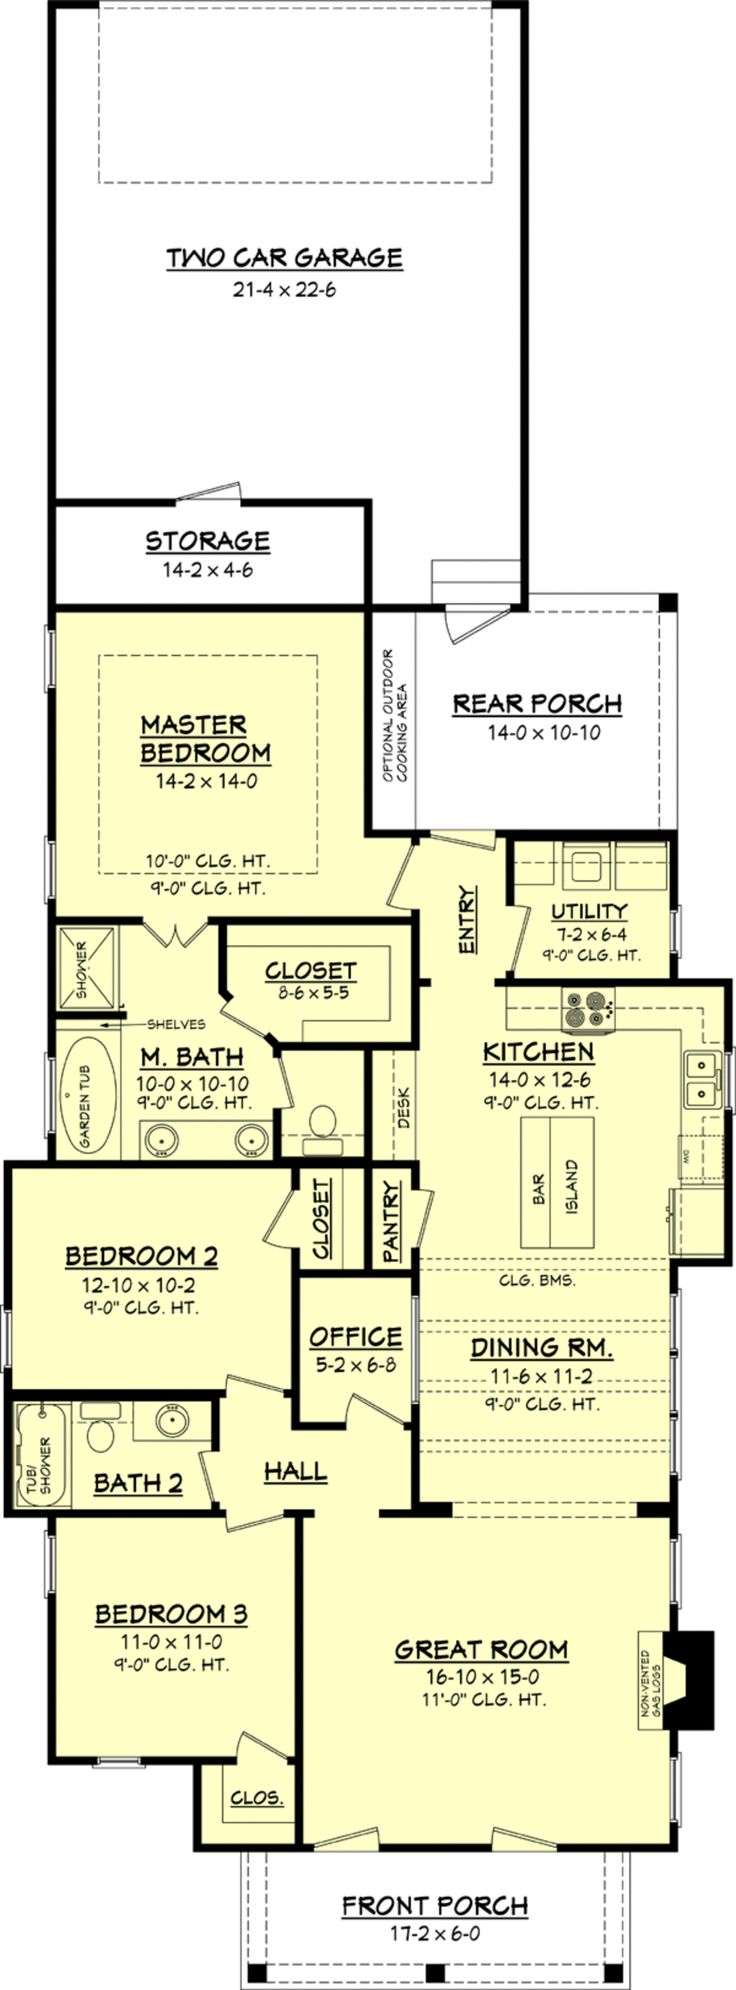 121 best 1800 sq ft house plans images on Pinterest